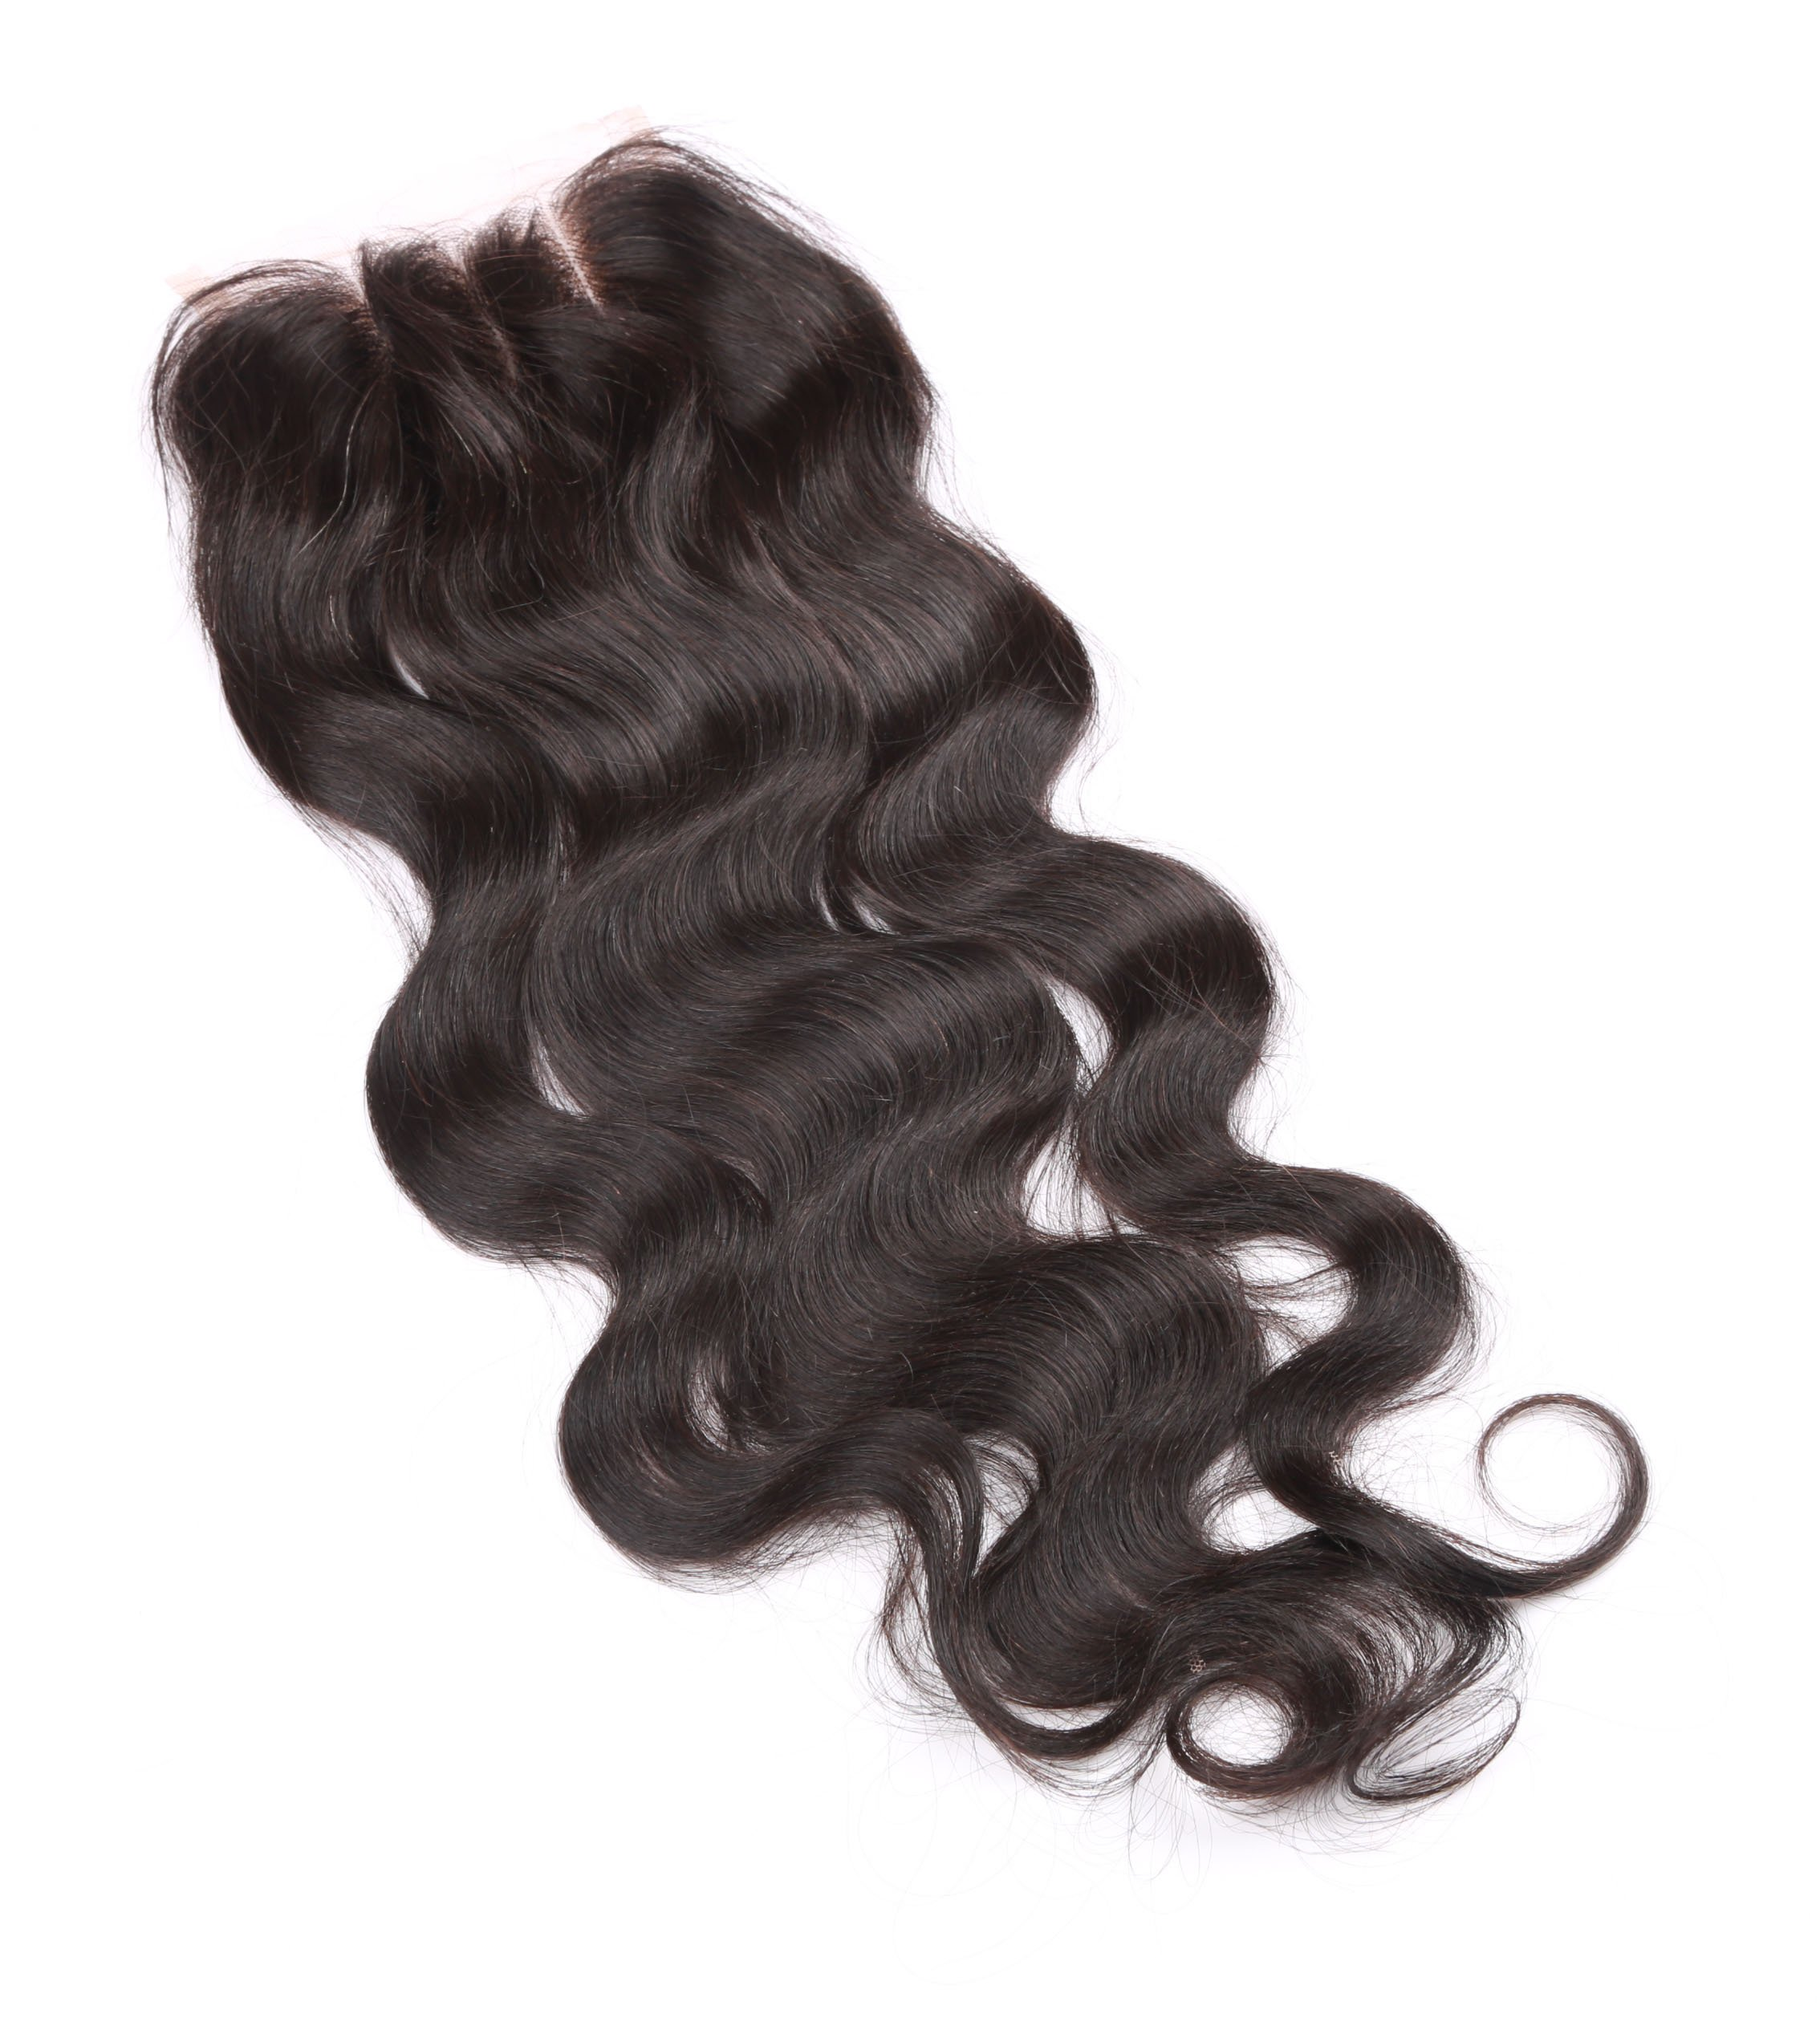 Fennell 3 Part Closure Body Wave Virgin Brazilian Hair 130% Density Lace Closure Natural Hair Color Soft and Silky(8''-20'') (8 inches) by Fennell (Image #6)